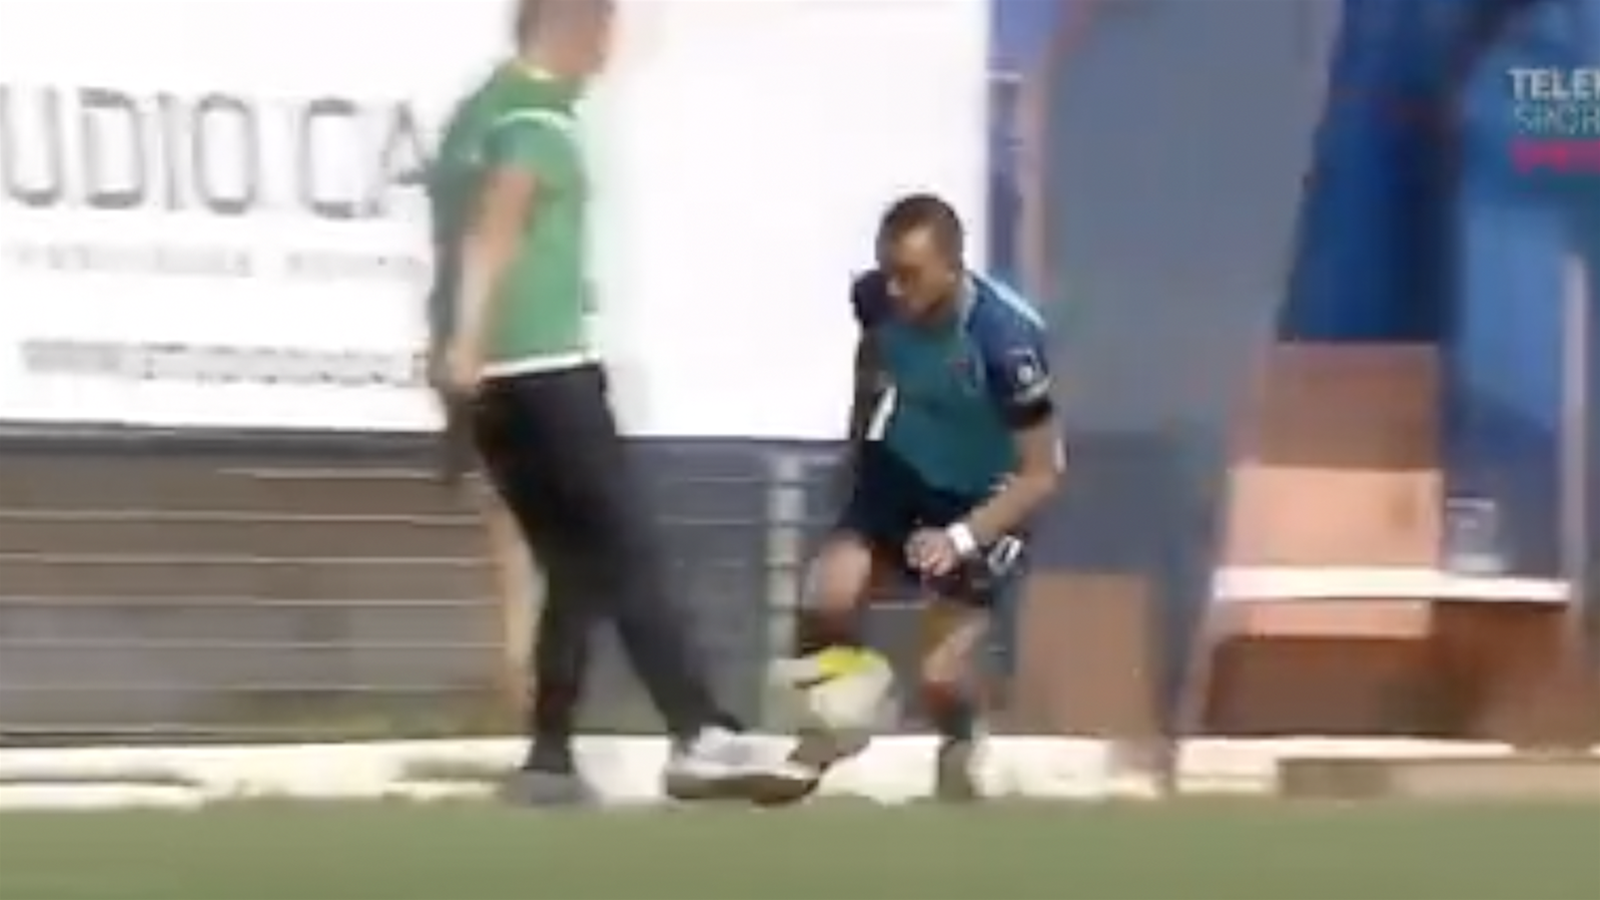 WATCH: Coach sent off for tripping rival player